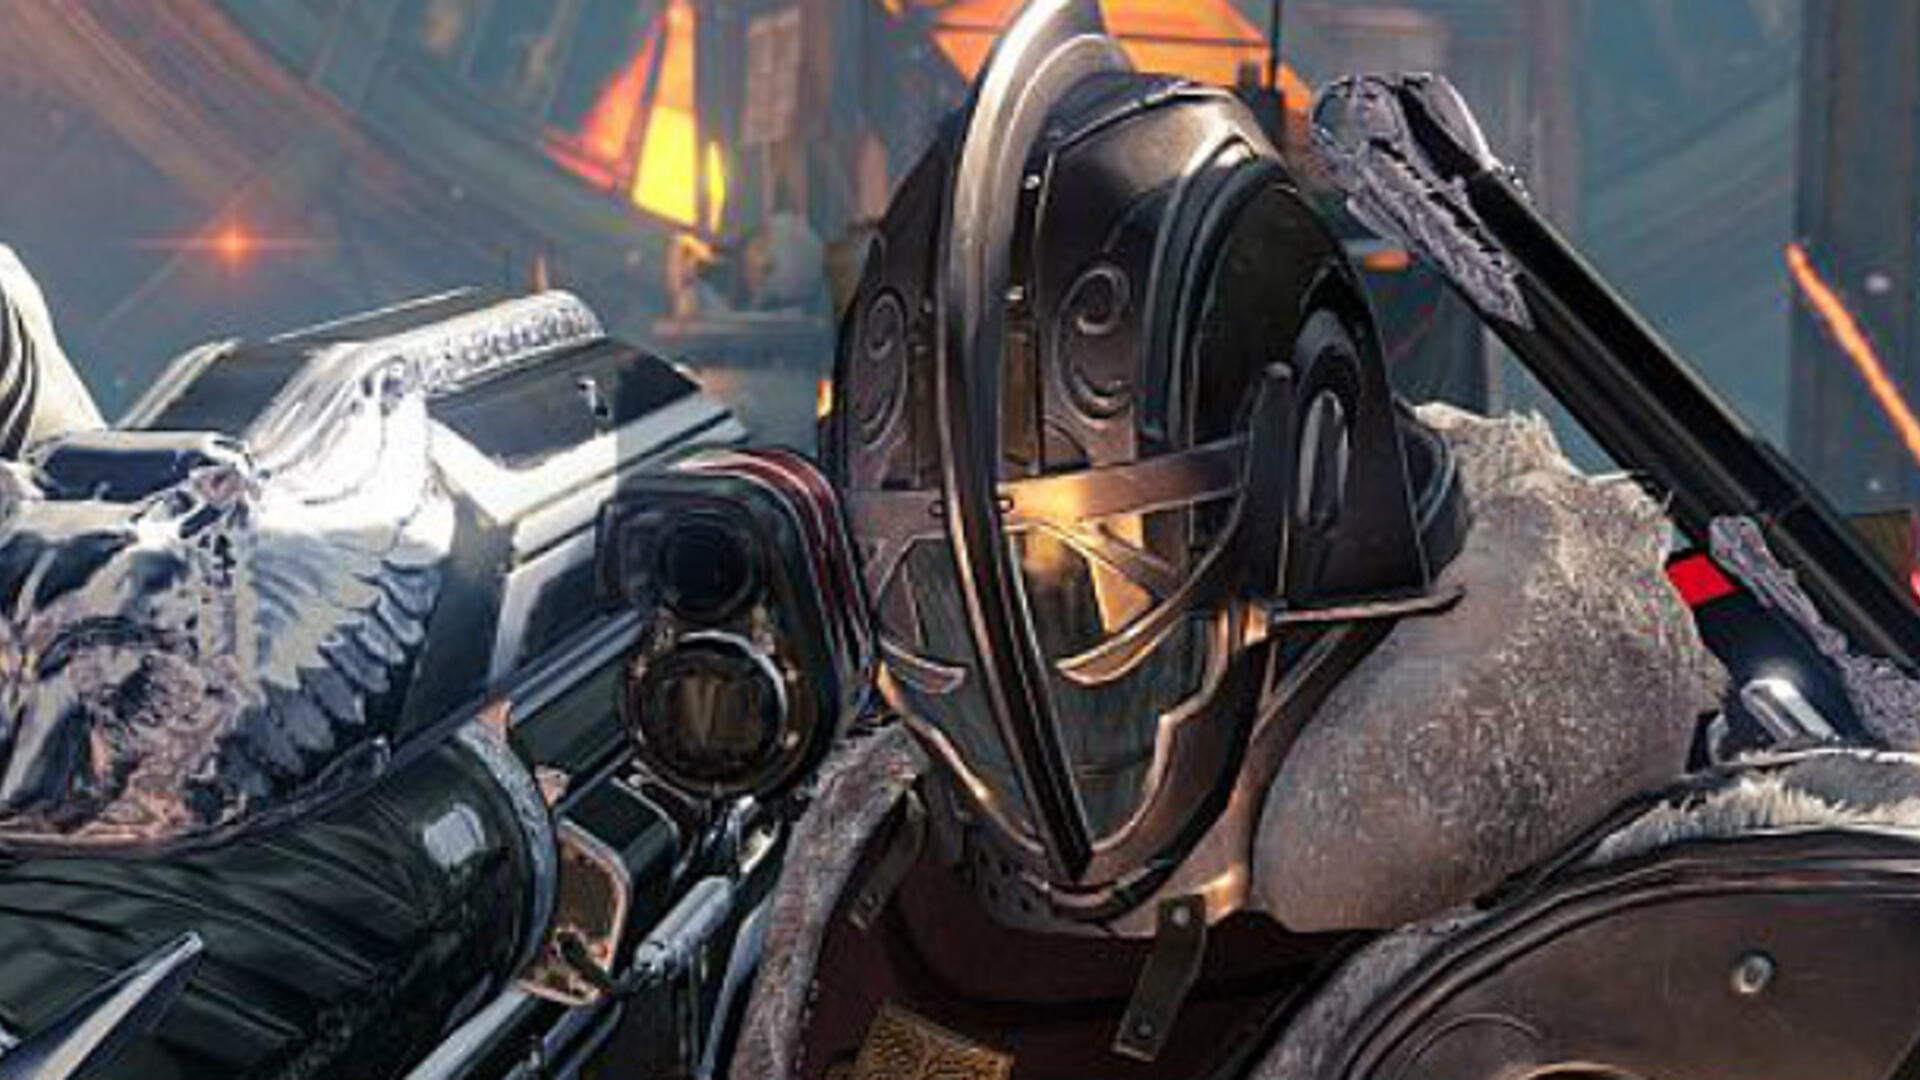 Destiny 2 Still Launching in 2017, Activision Confirms